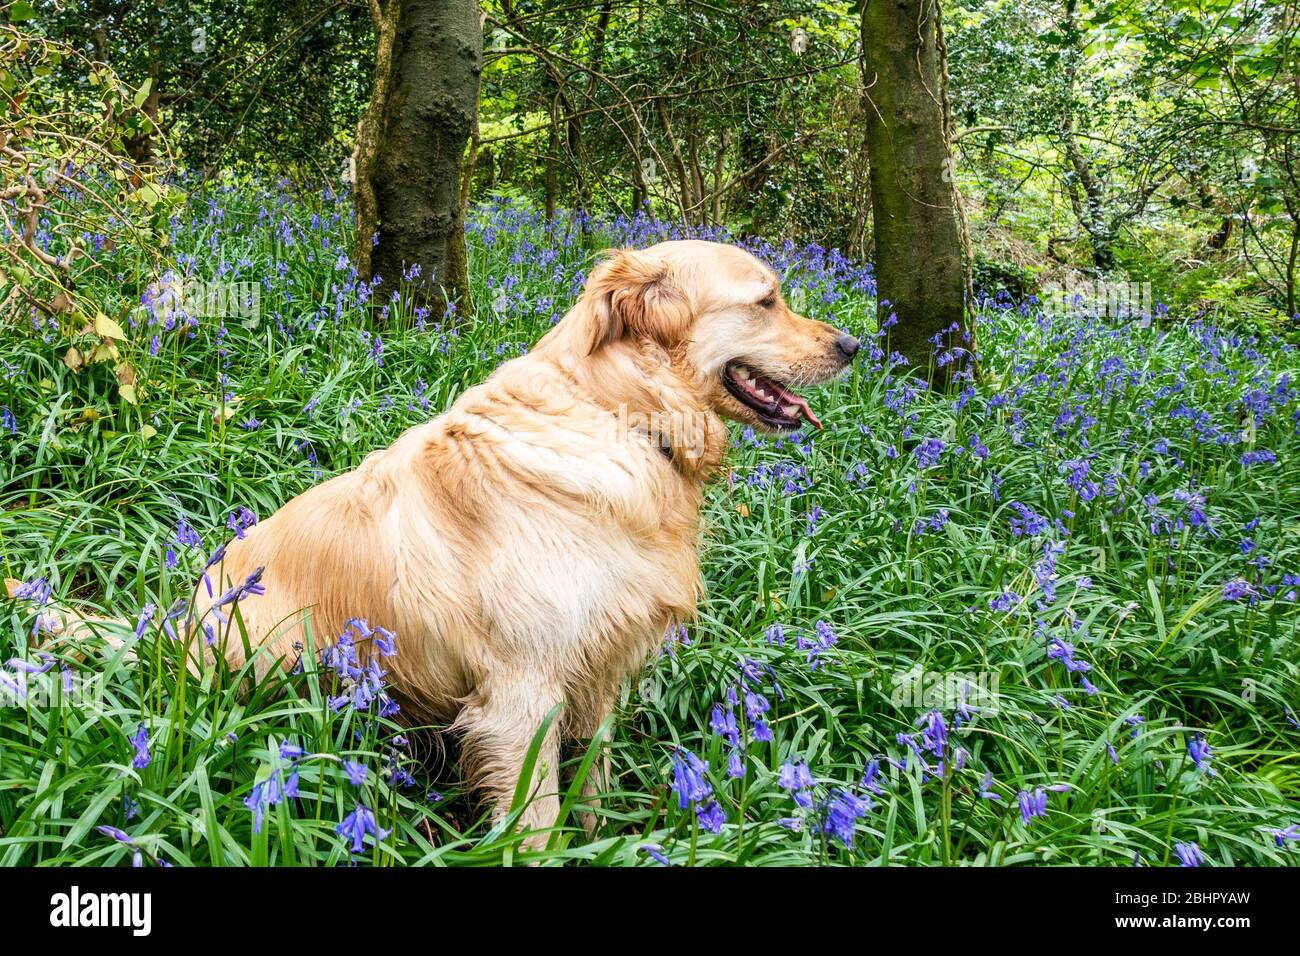 courtmacsherry-west-cork-ireland-27th-apr-2020-bluebells-were-in-full-bloom-as-they-formed-a-stunning-carpet-in-courtmacsherry-woods-today-luna-the-labrador-had-a-great-time-playing-in-the-woods-credit-ag-newsalamy-live-news-2BHPYAW.jpg